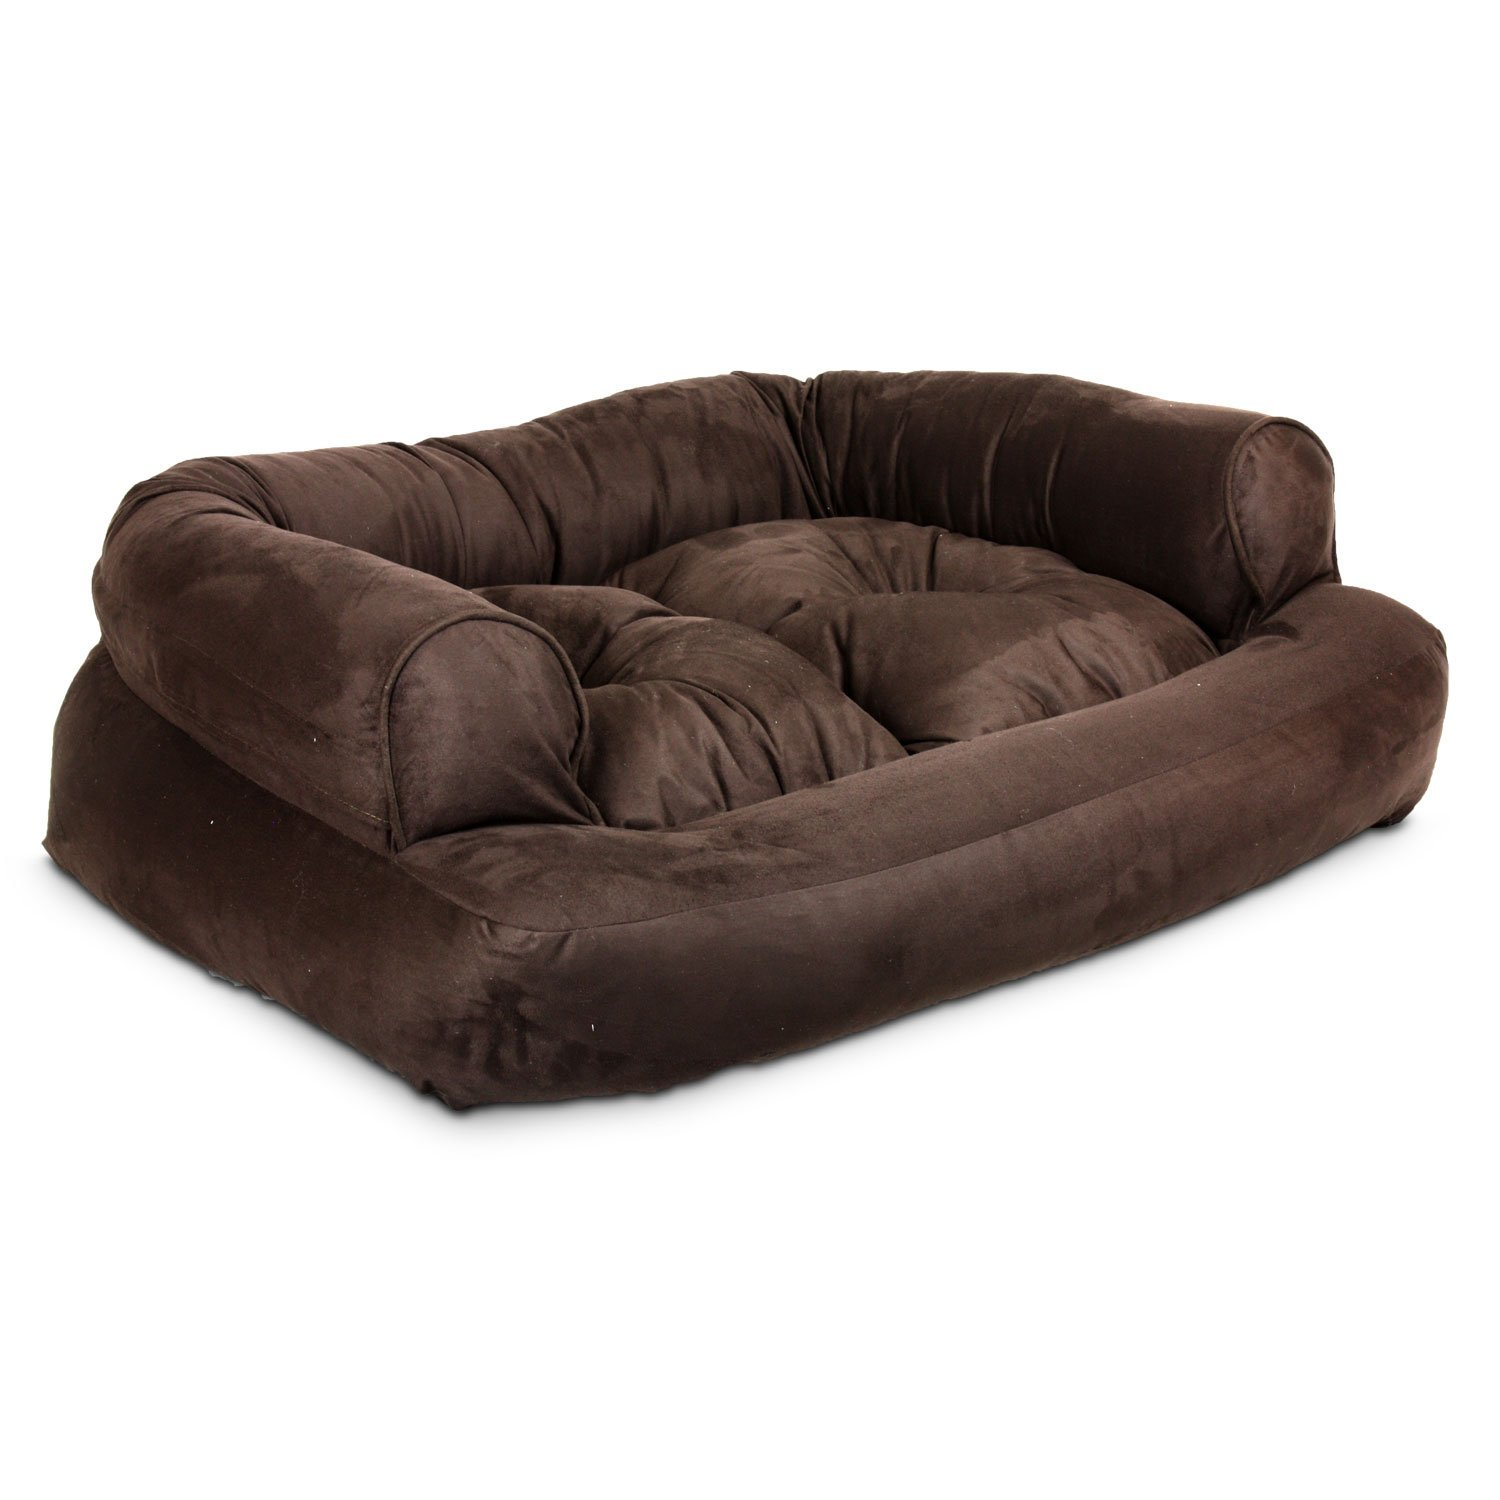 Large Dog Sofas Second Hand Designer Total Fab Luxury And Beds For Small Dogs